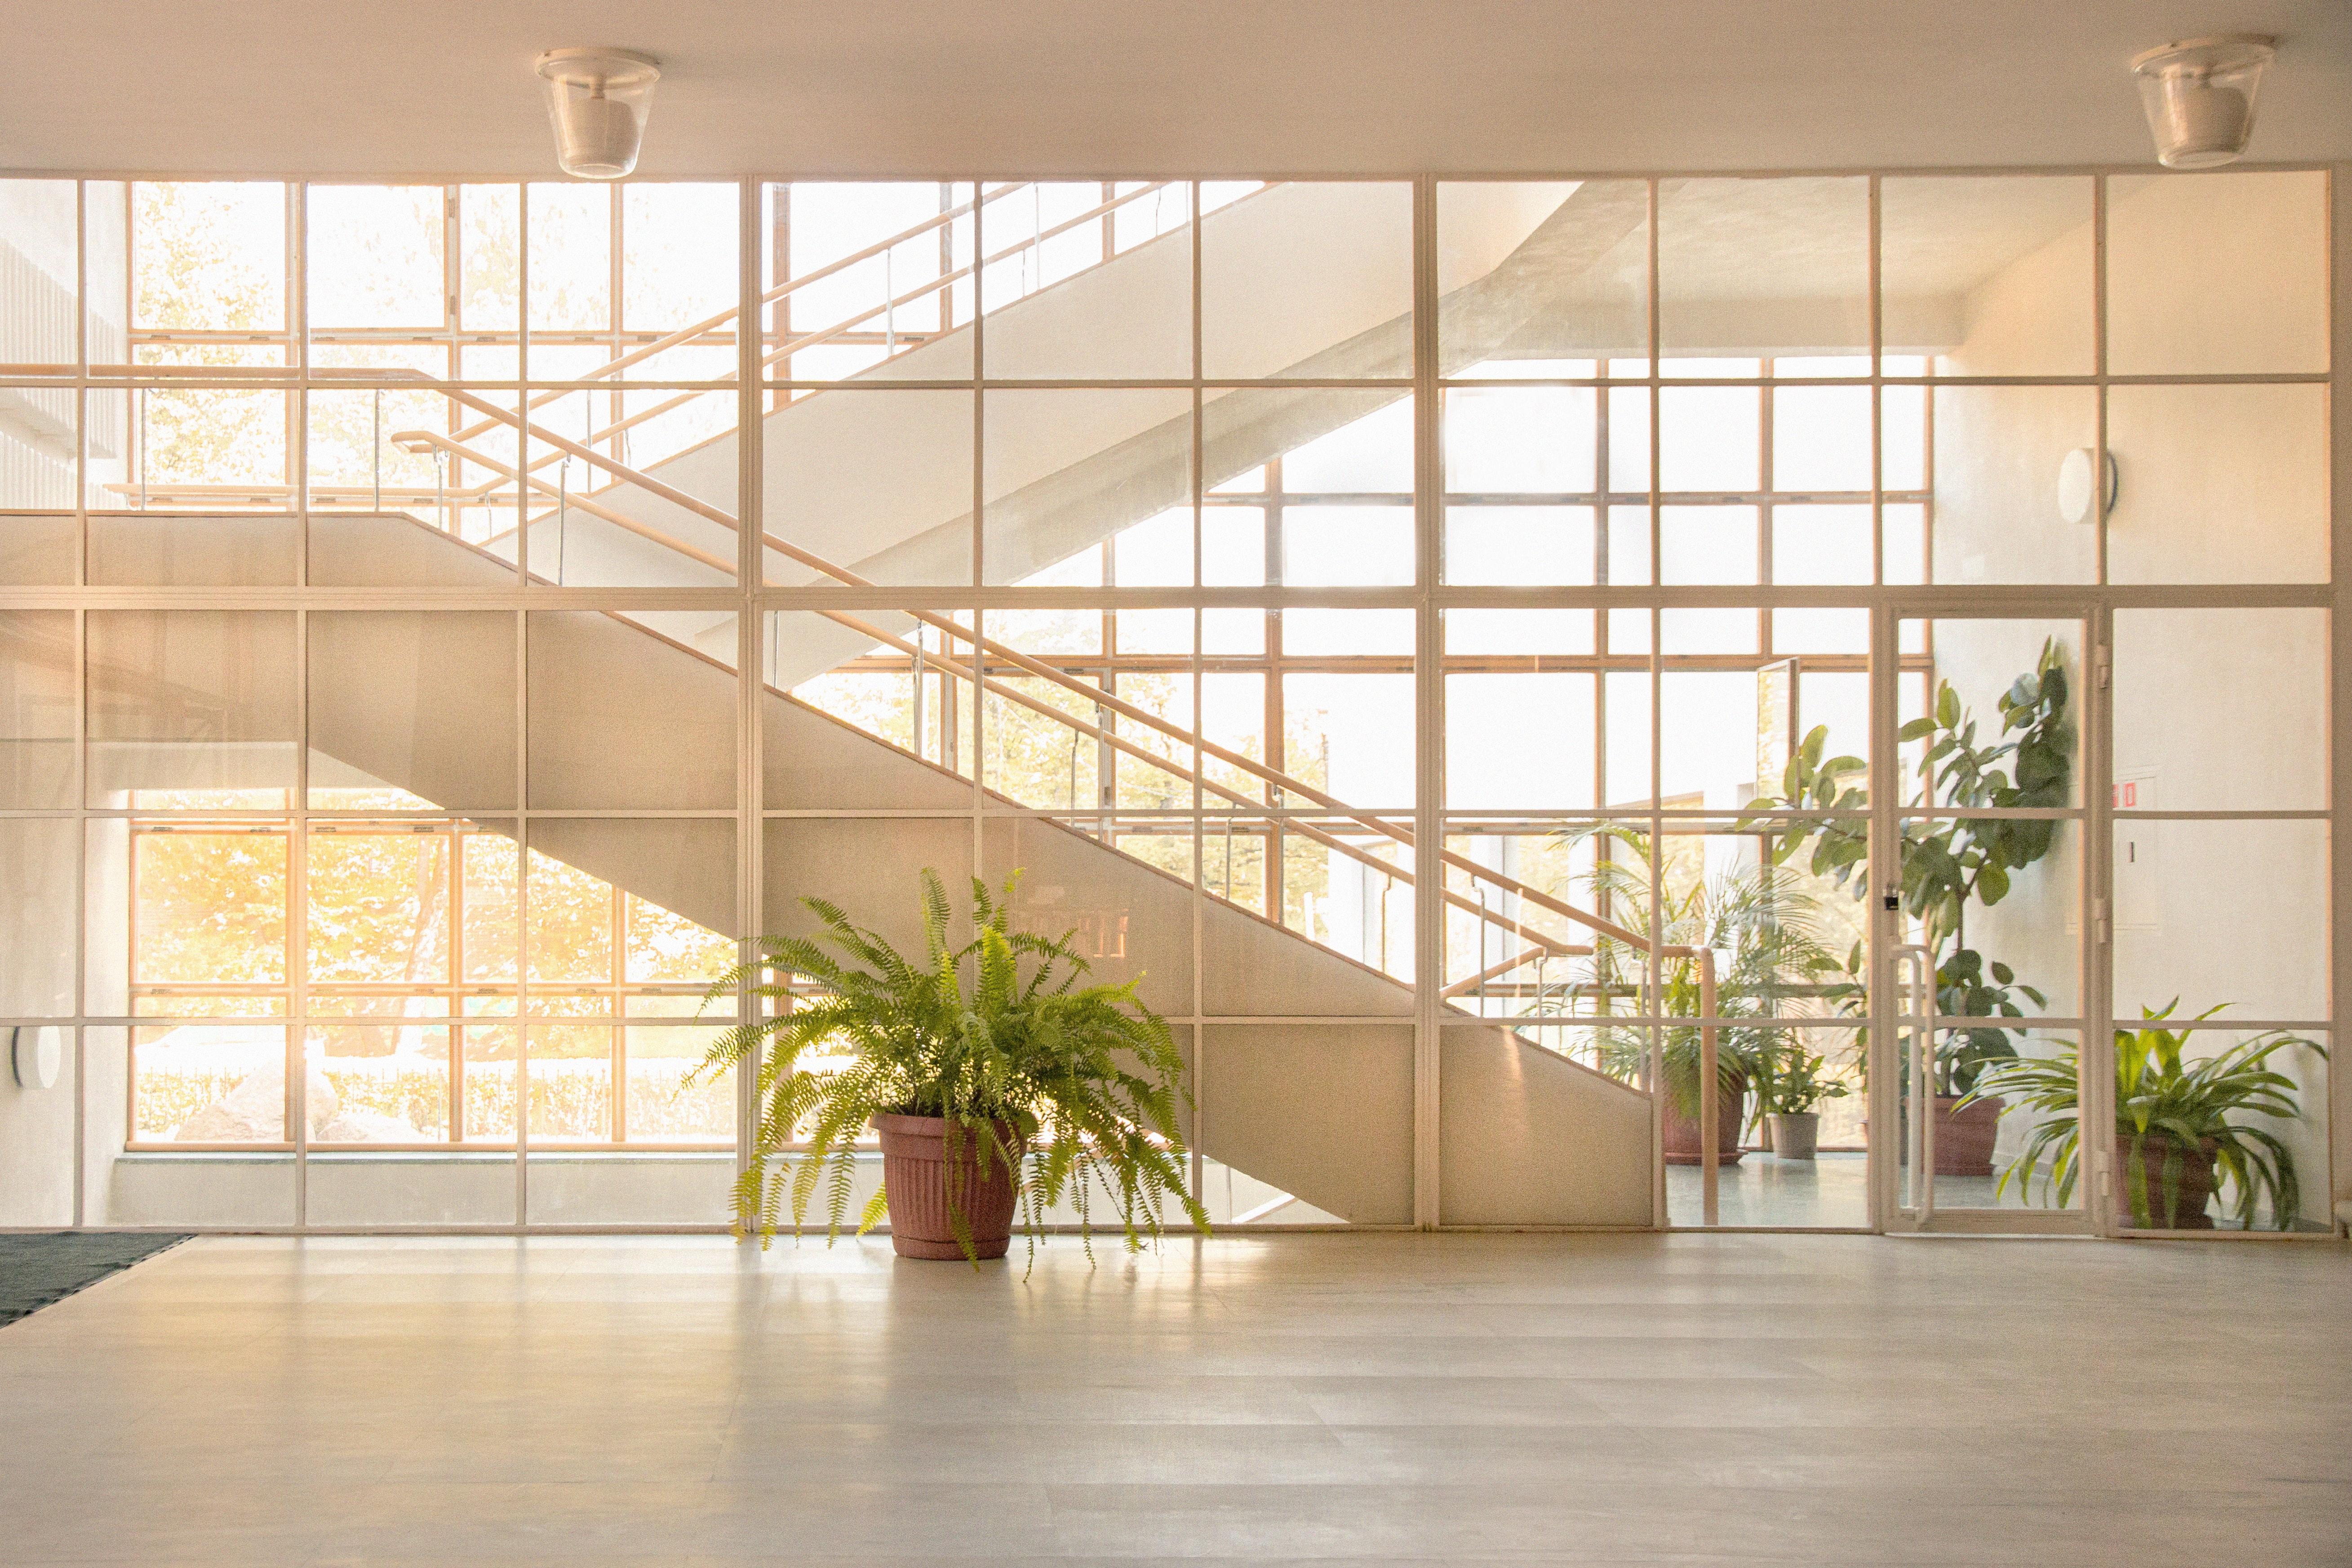 How to Improve Indoor Air Quality: 8 Best Practices